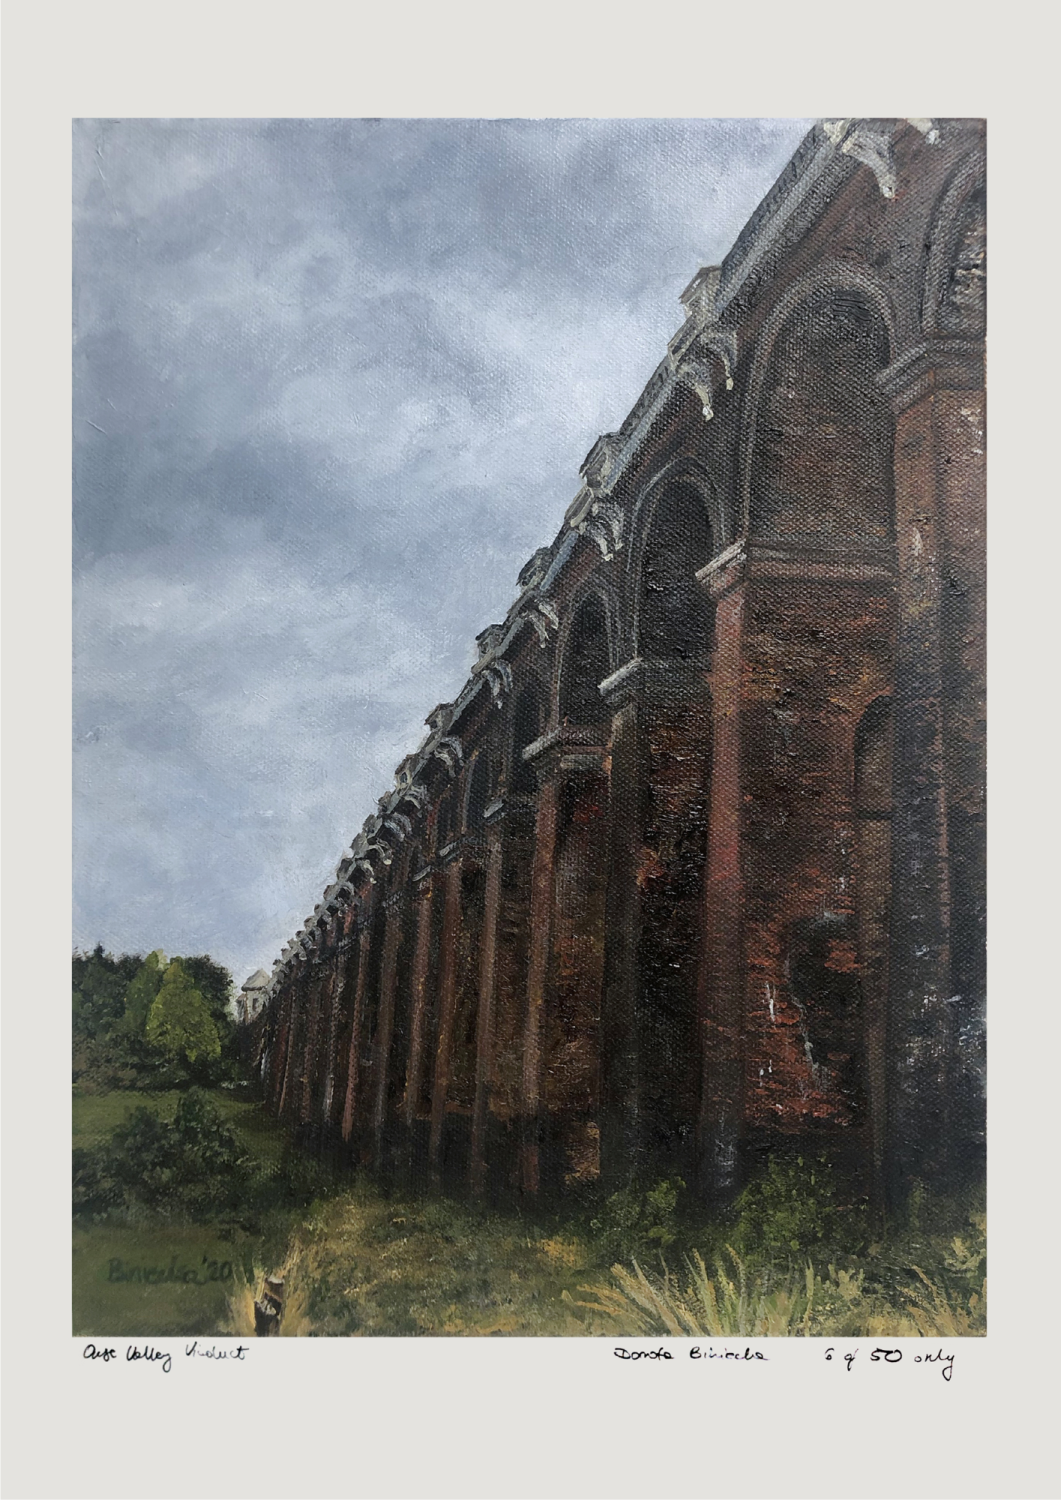 Ouse Valley Viaduct Giclée Print A2